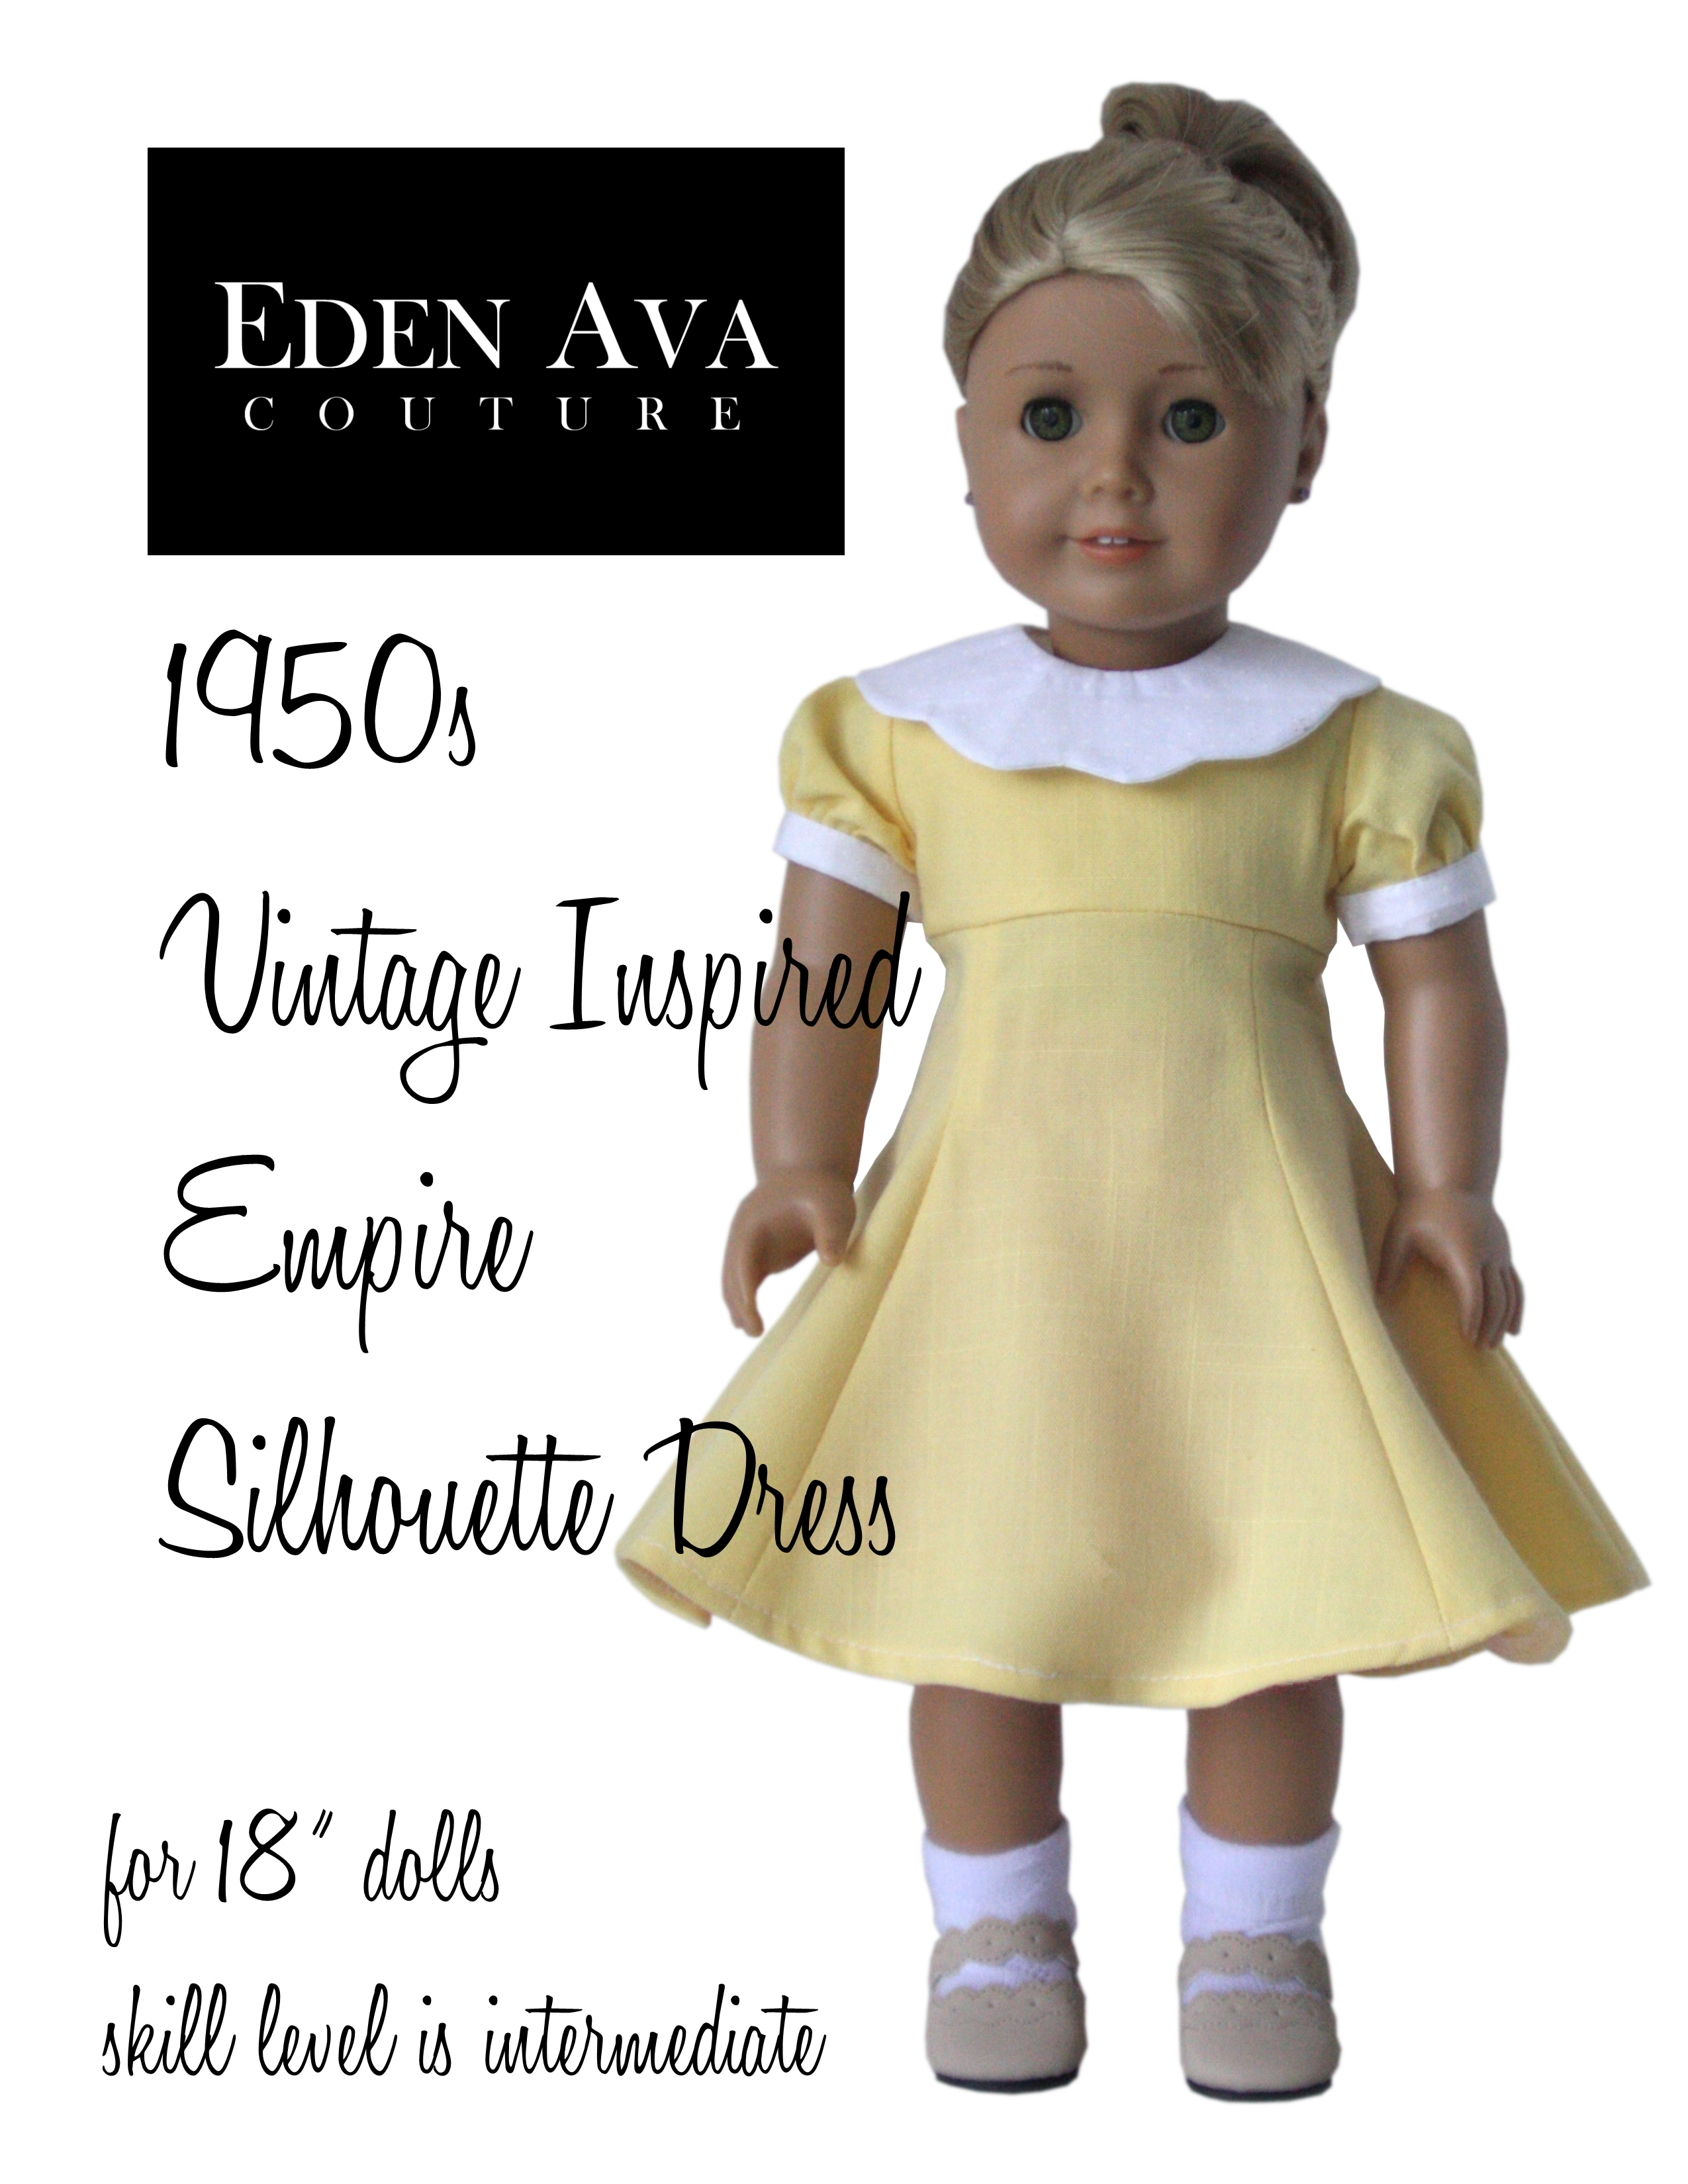 Eden Ava Couture | Sharing The Creative Journey One Pattern At A Time